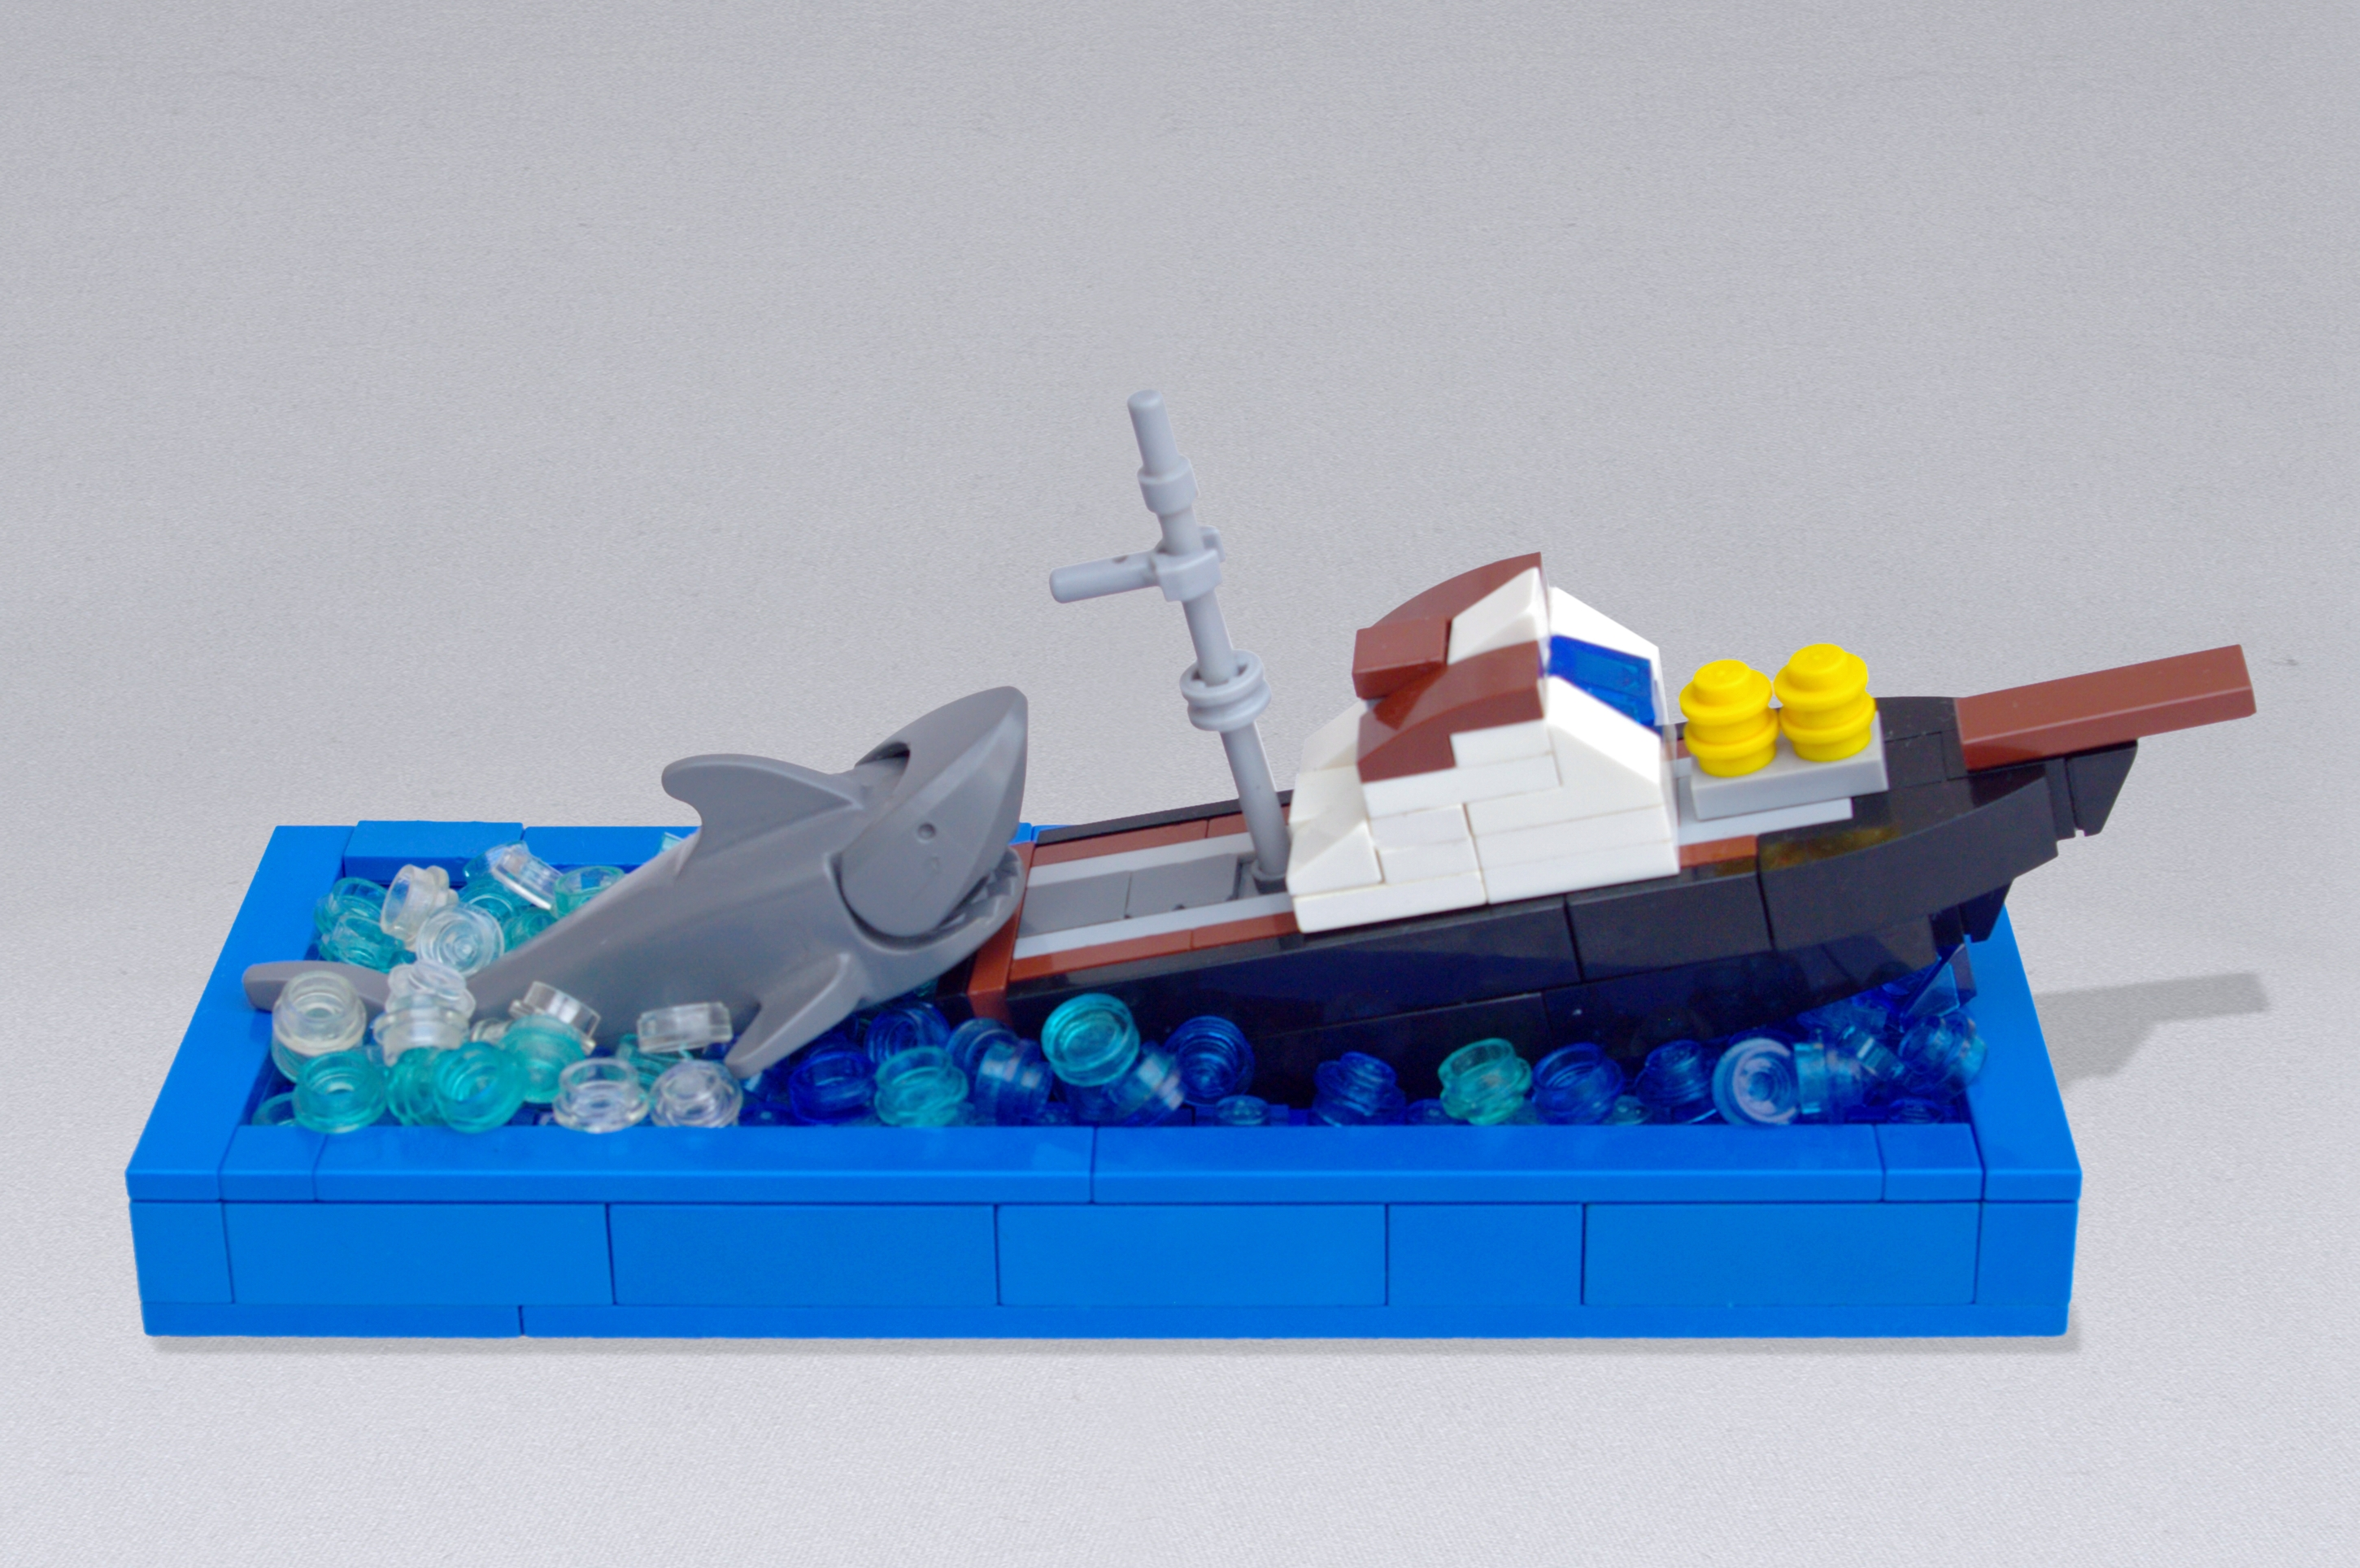 Concurs Microscale Movie Scenes – Creatia 8: You're gonna need a bigger boat!